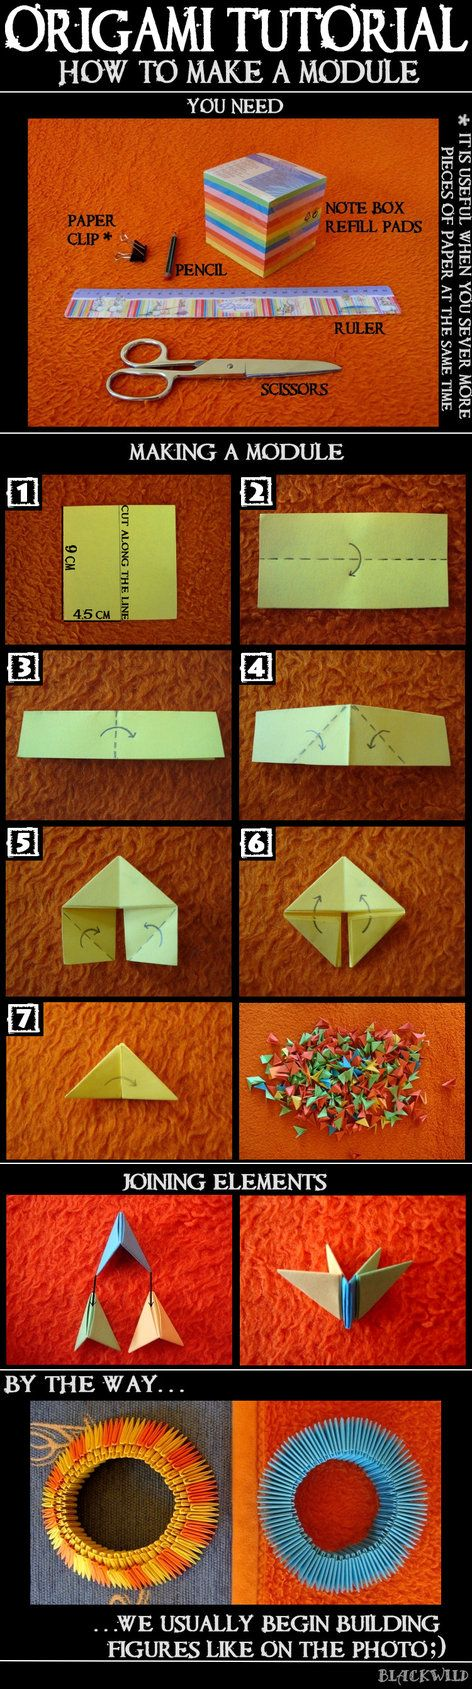 images of origami tutorials | Origami Tutorial - Module by ~blackwild on deviantART